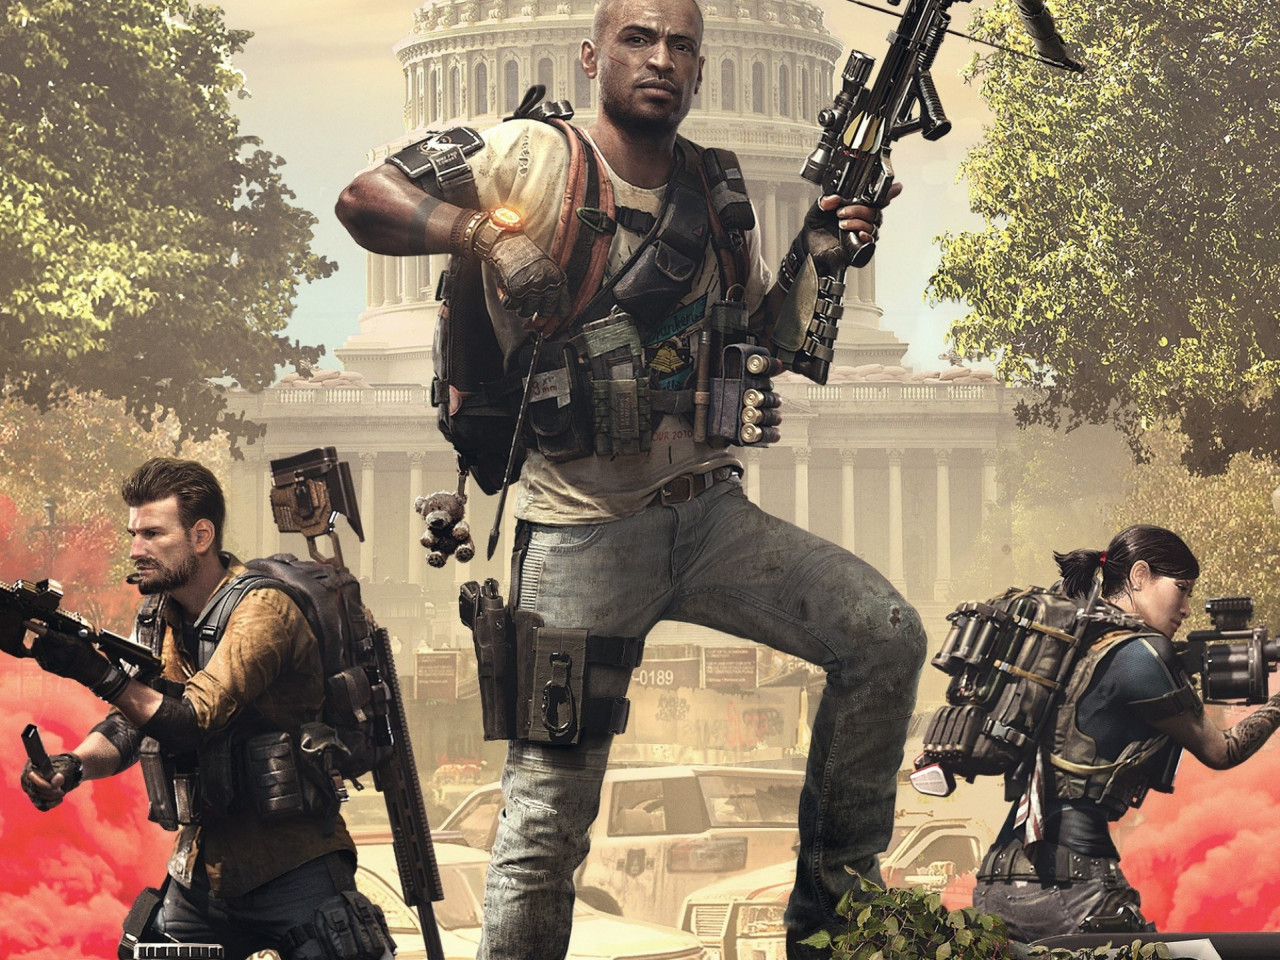 Tom Clancy's The Division 2 Episodes 2019 wallpaper 1280x960